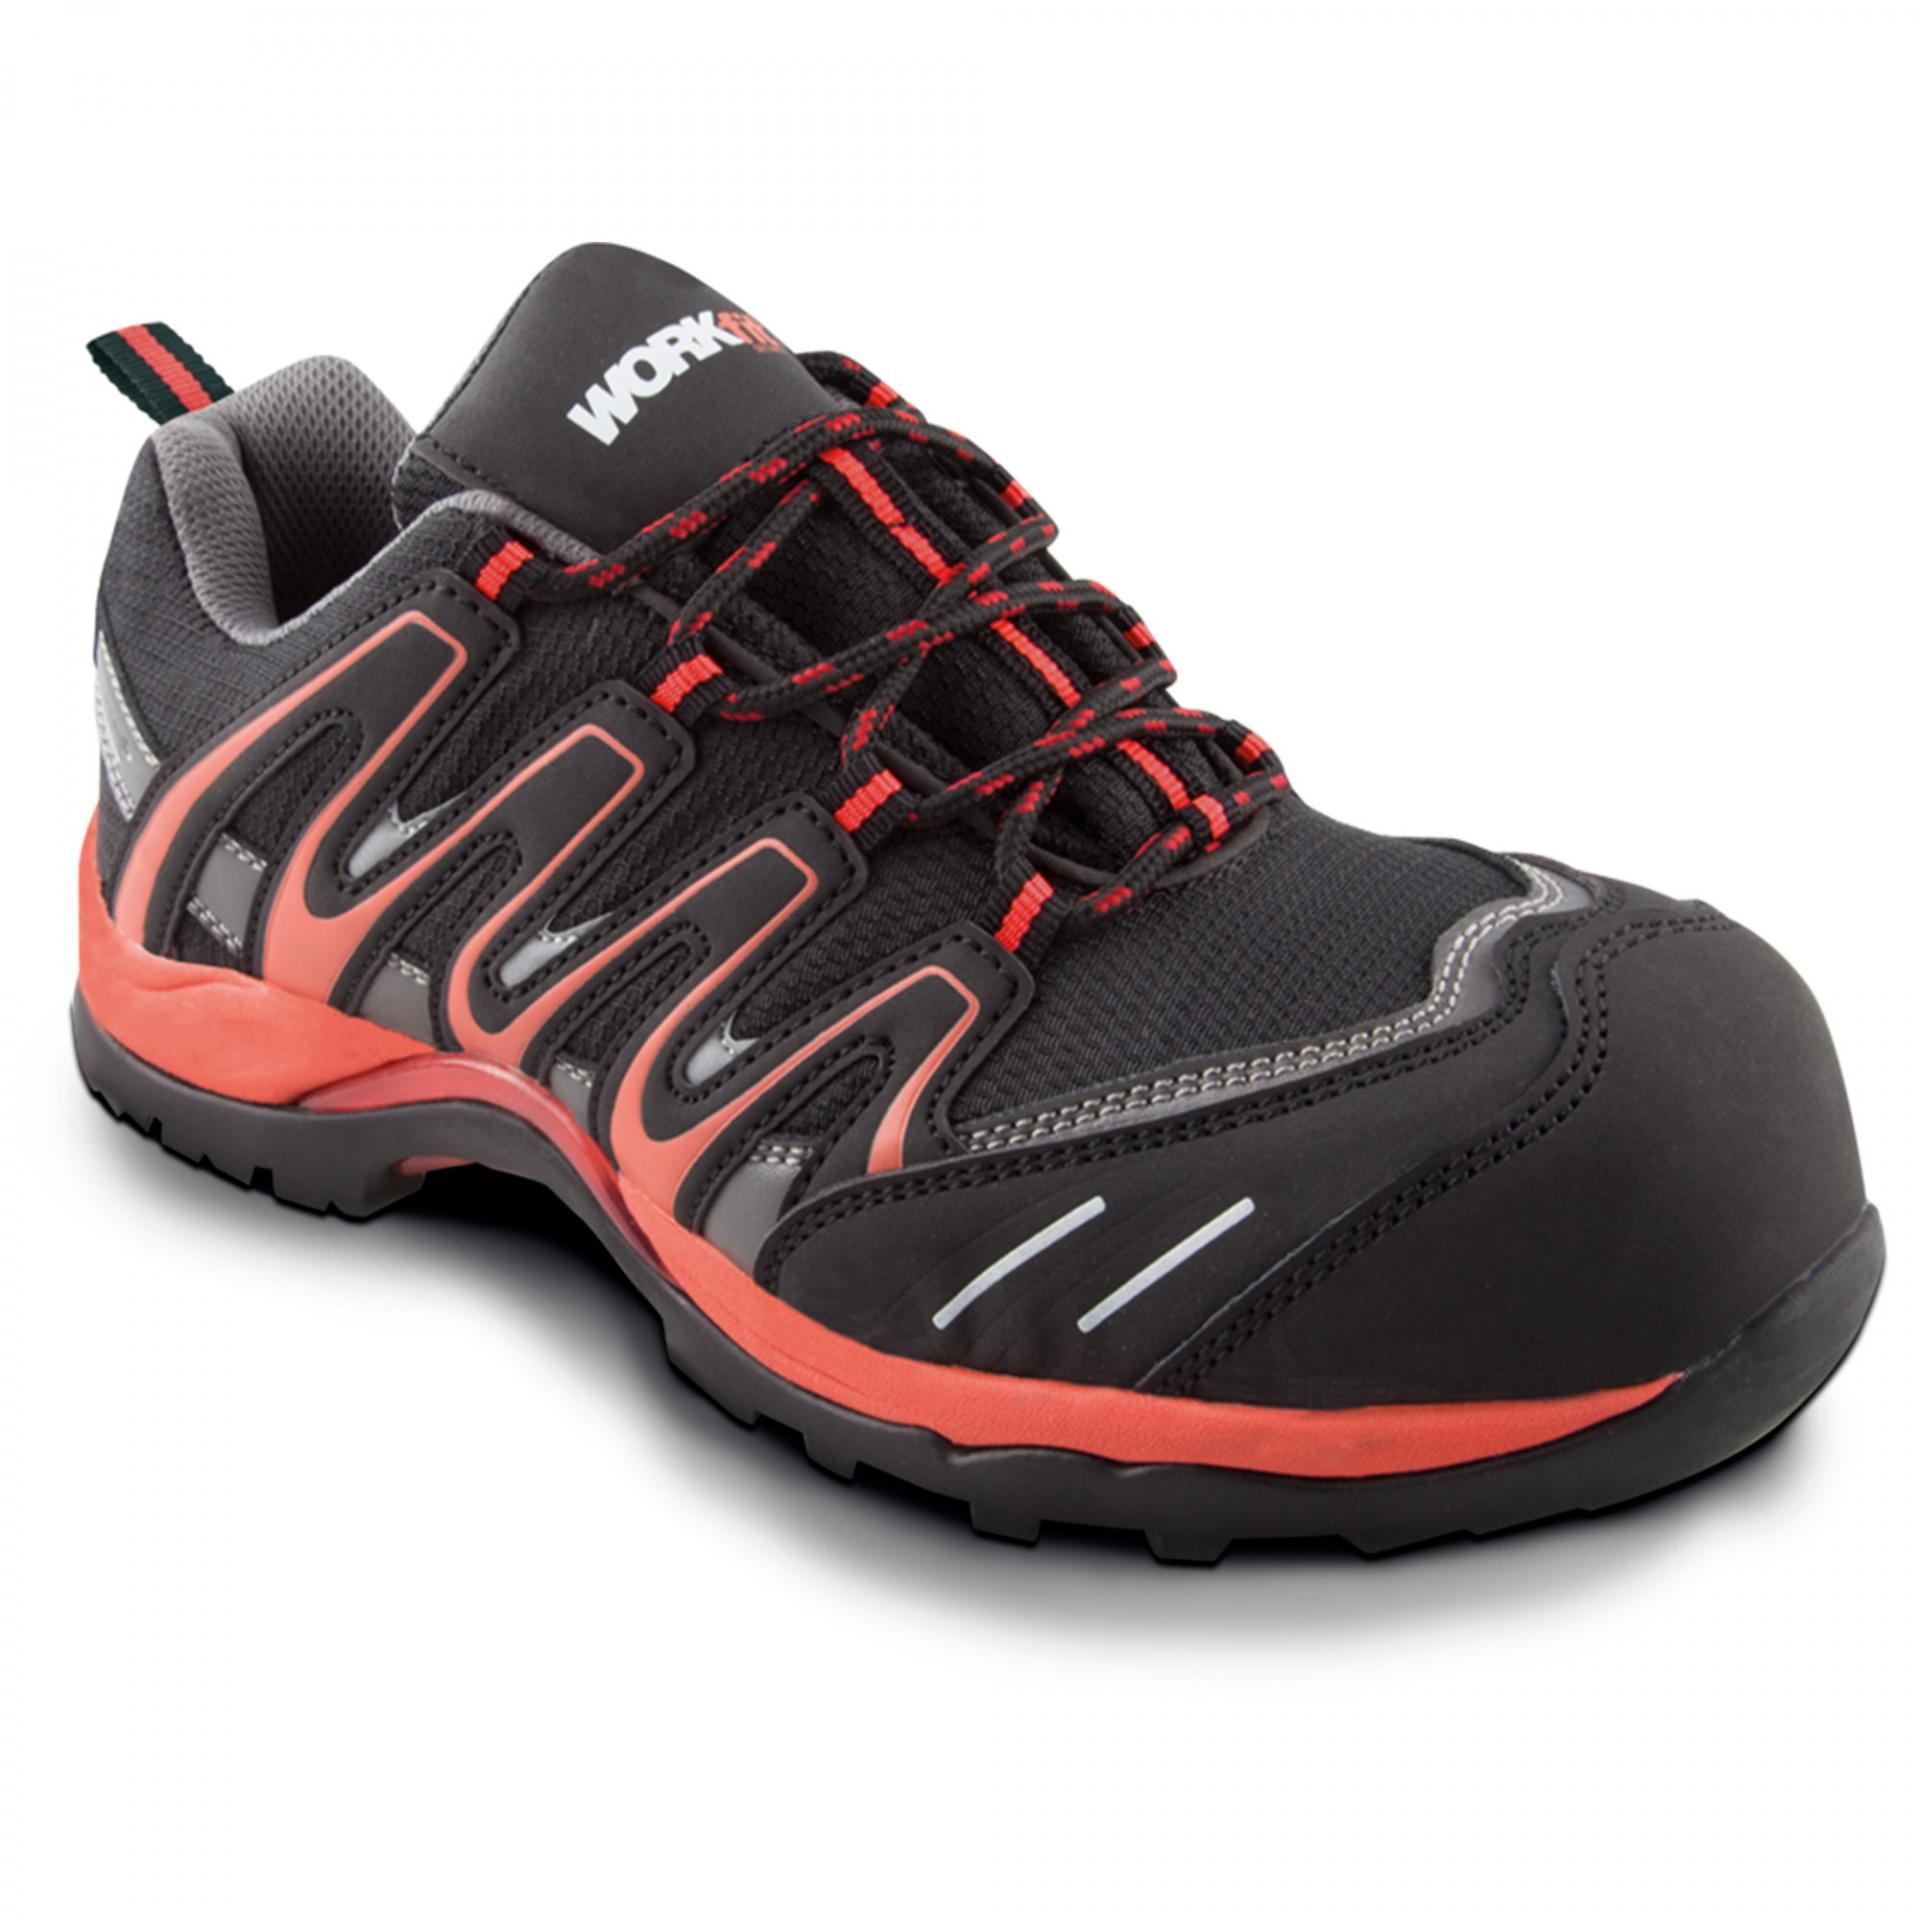 Zapato de seguridad Workfit Trail S1P